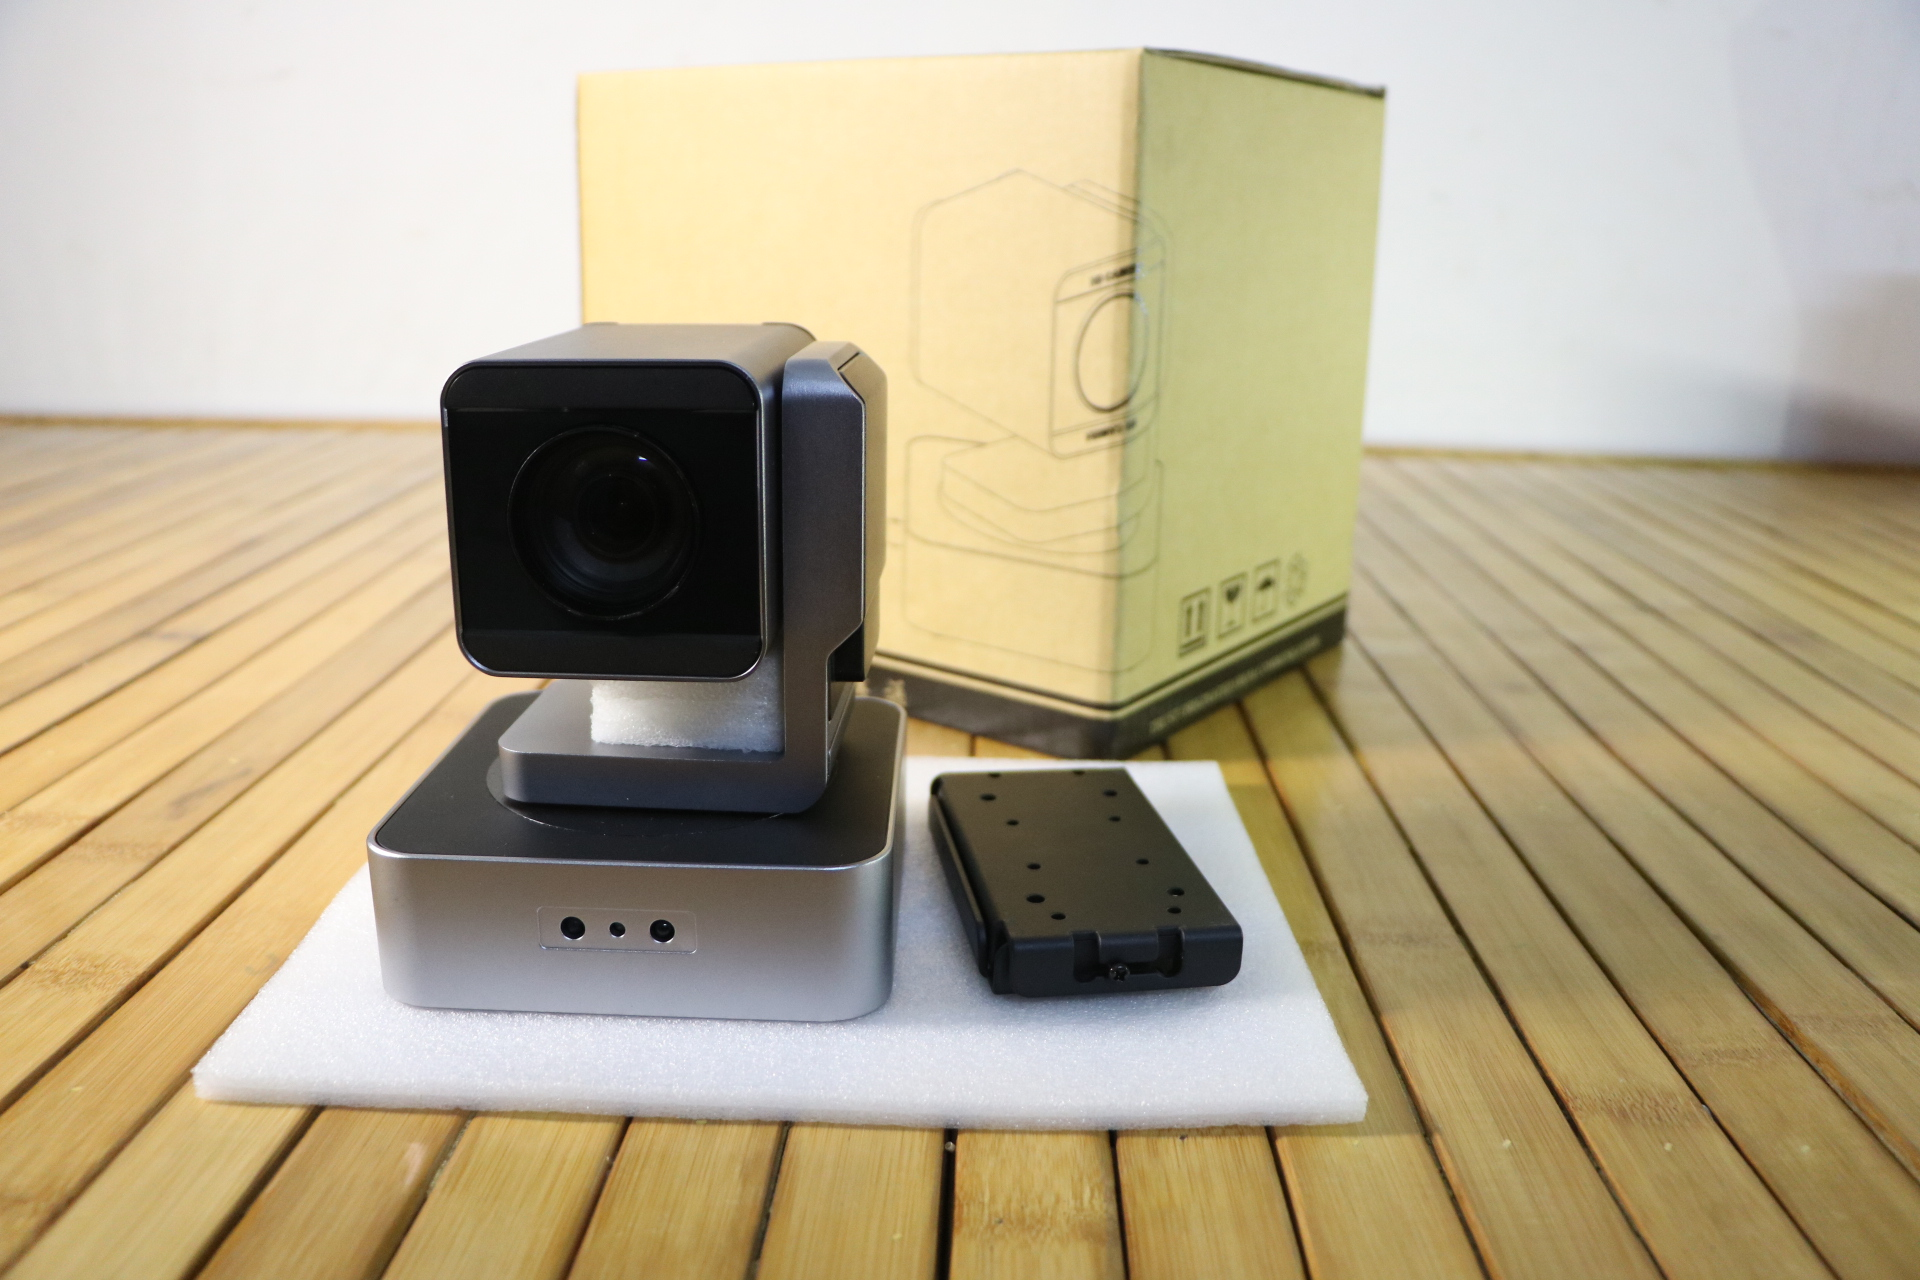 20x 1080P60 video conference camera